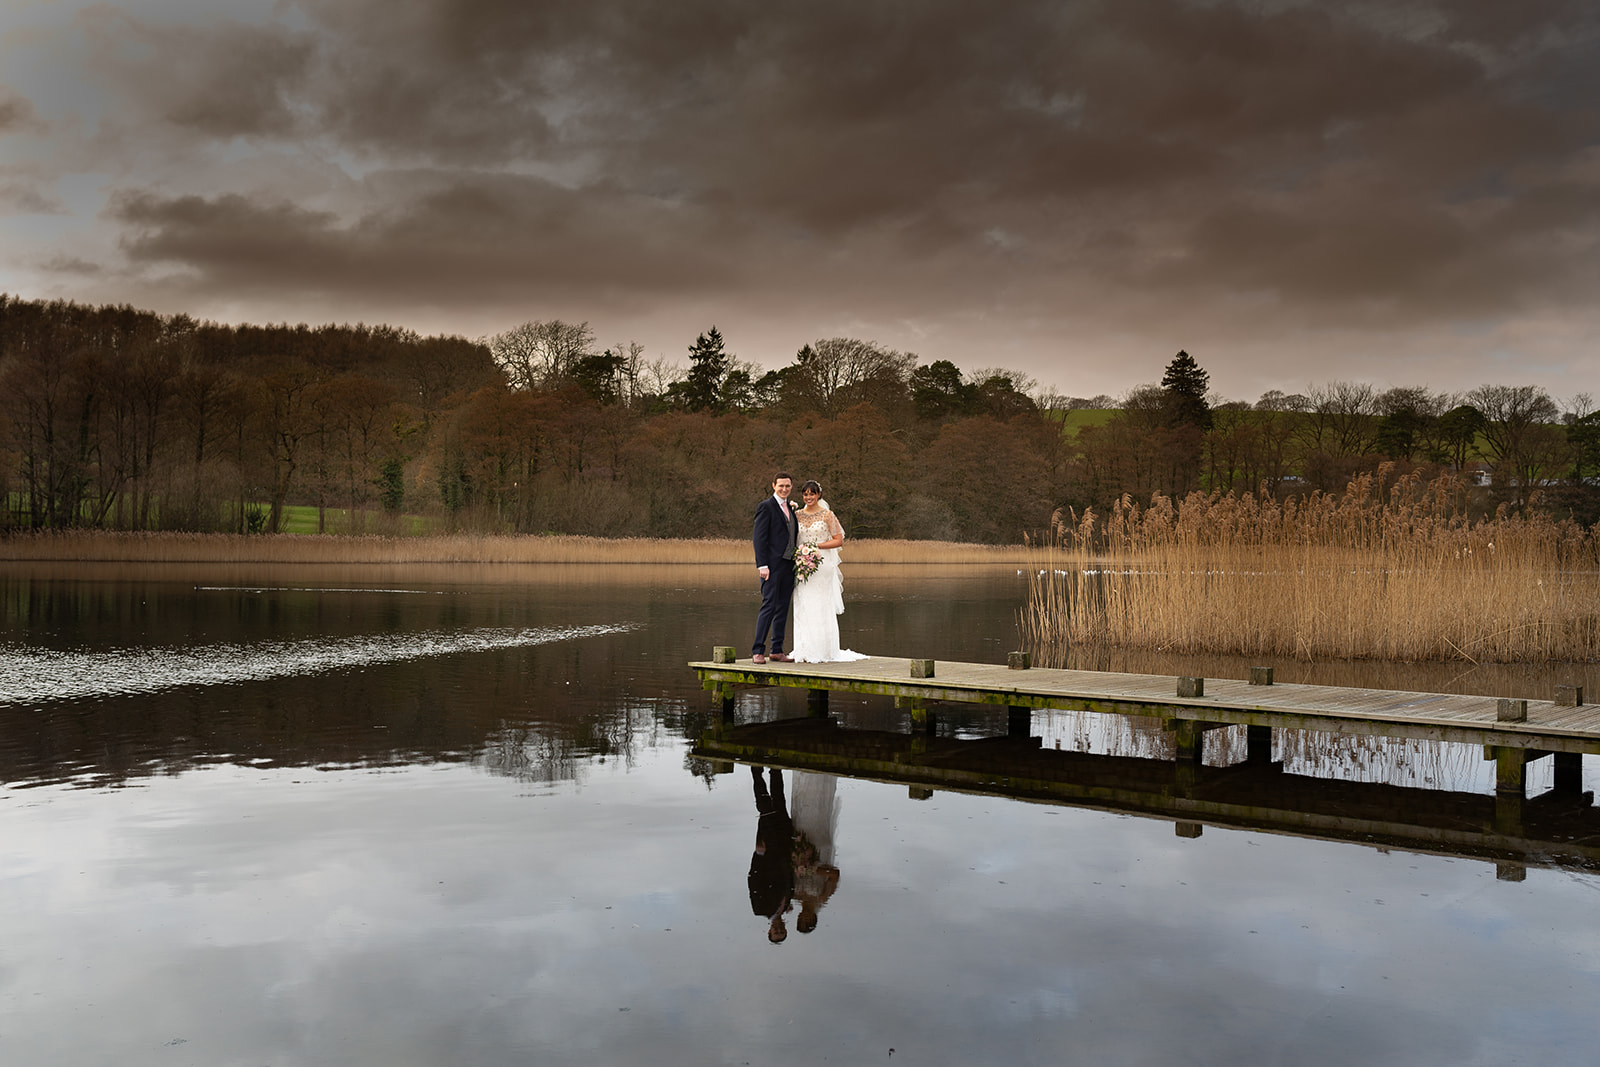 Bride and groom standing on a jetty in the lake at Hensol Castle, South Wales